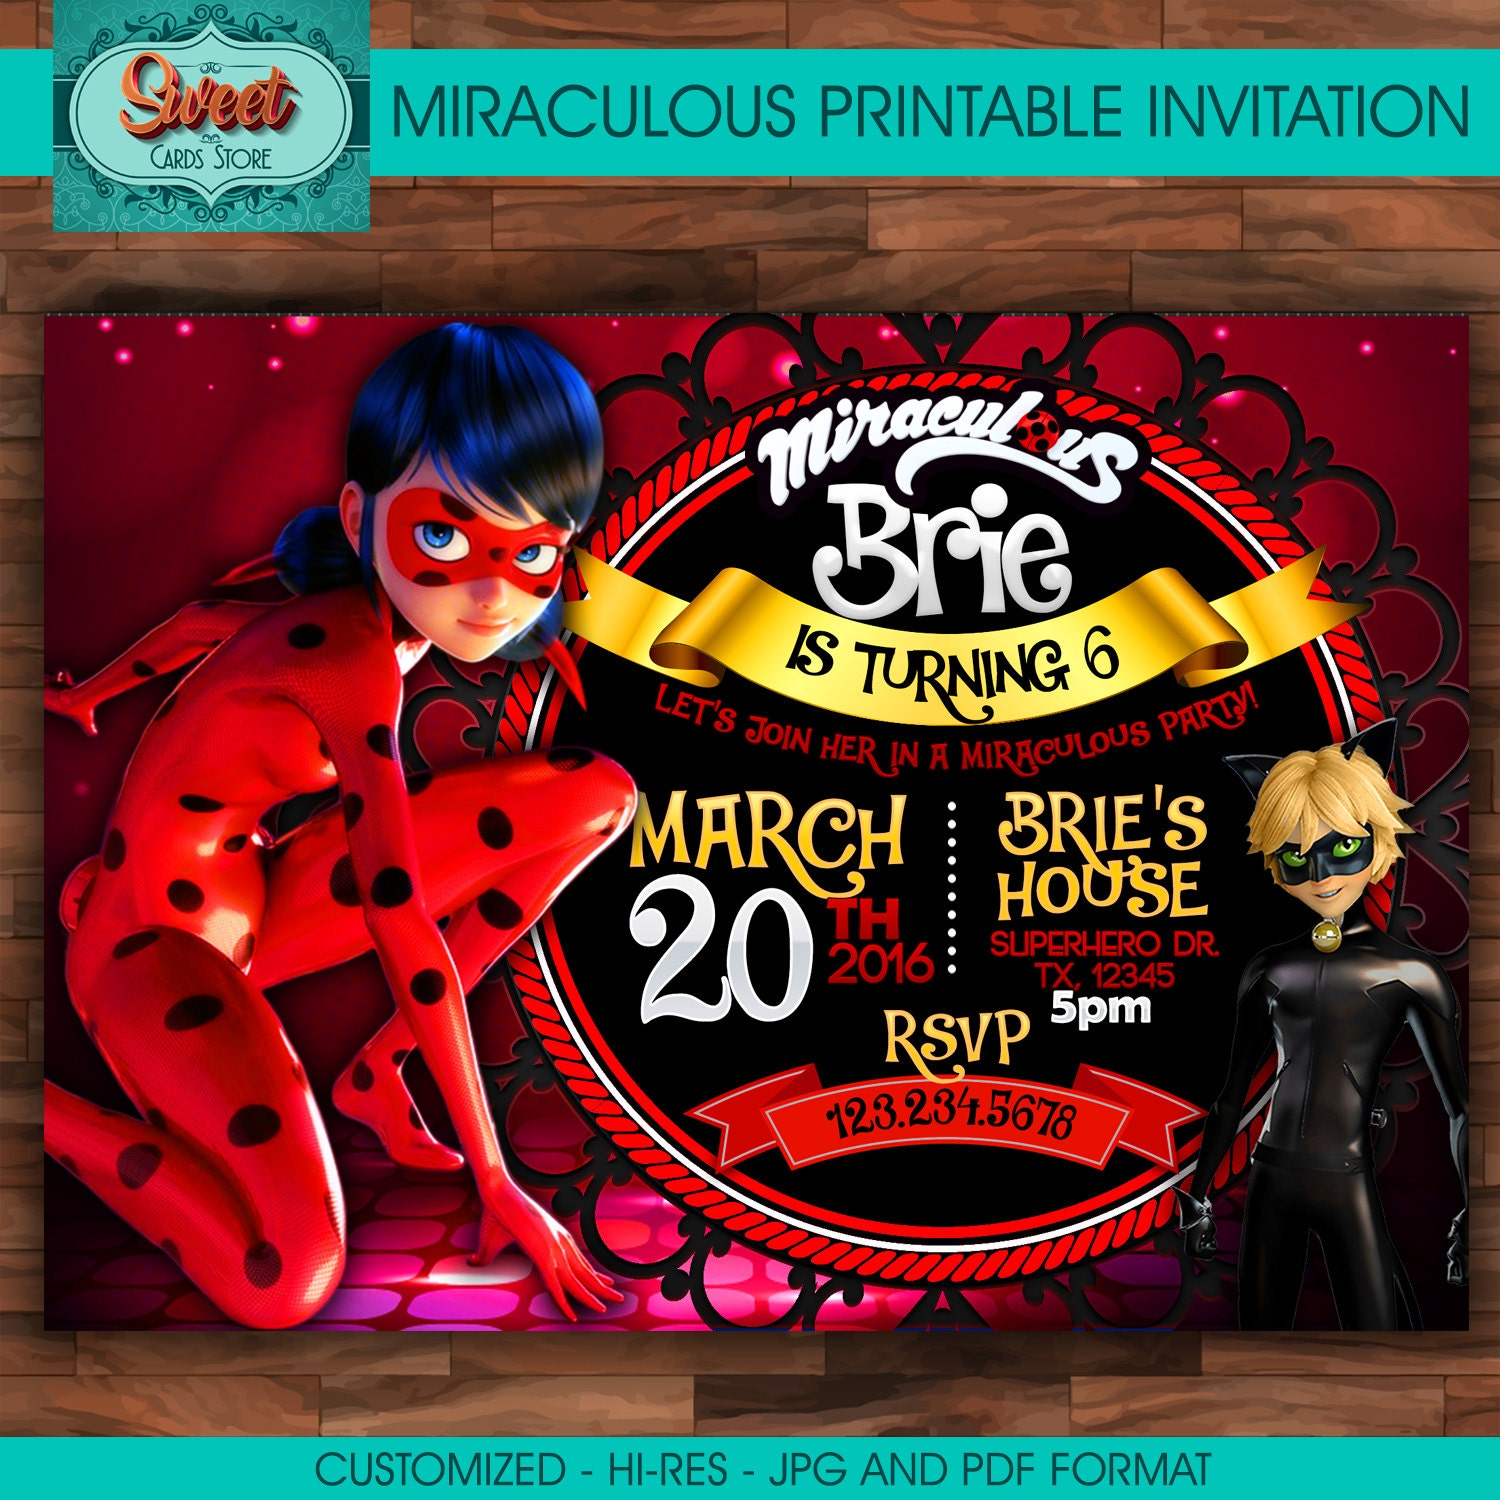 Miraculous personalized digital invitation miraculous ladybug | Etsy